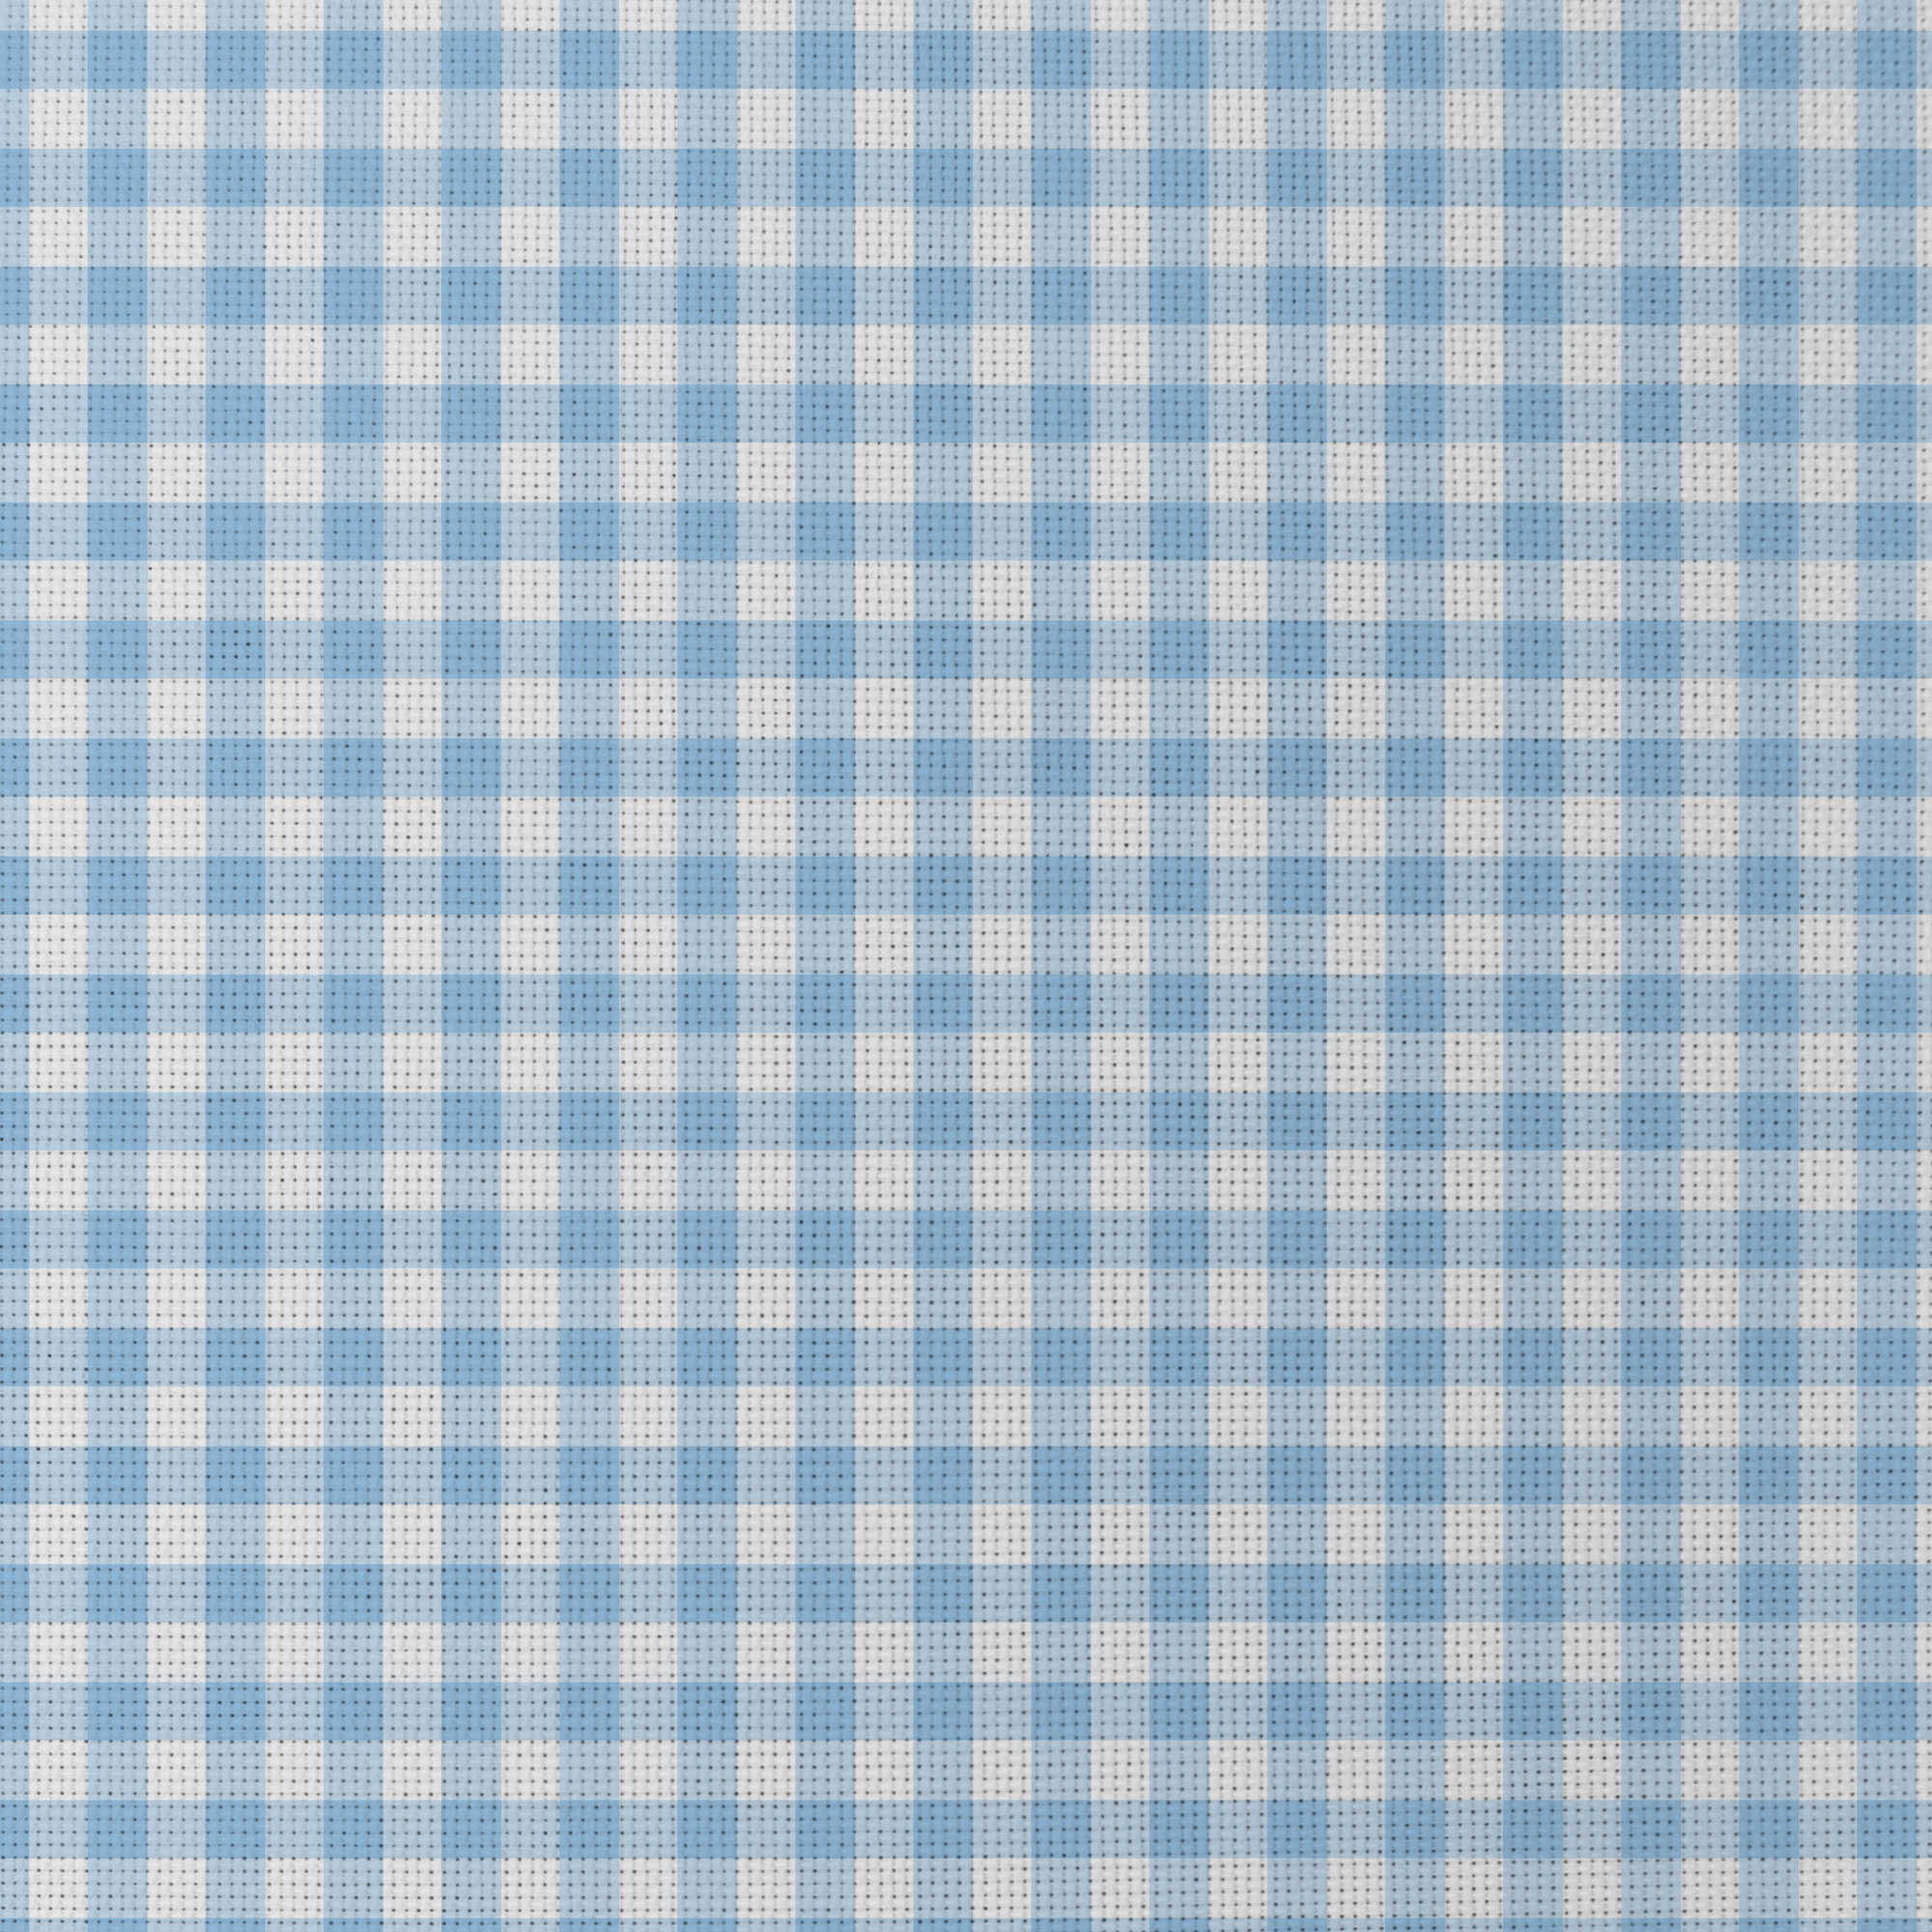 Blue Gingham Patterned Cross Stitch Fabric